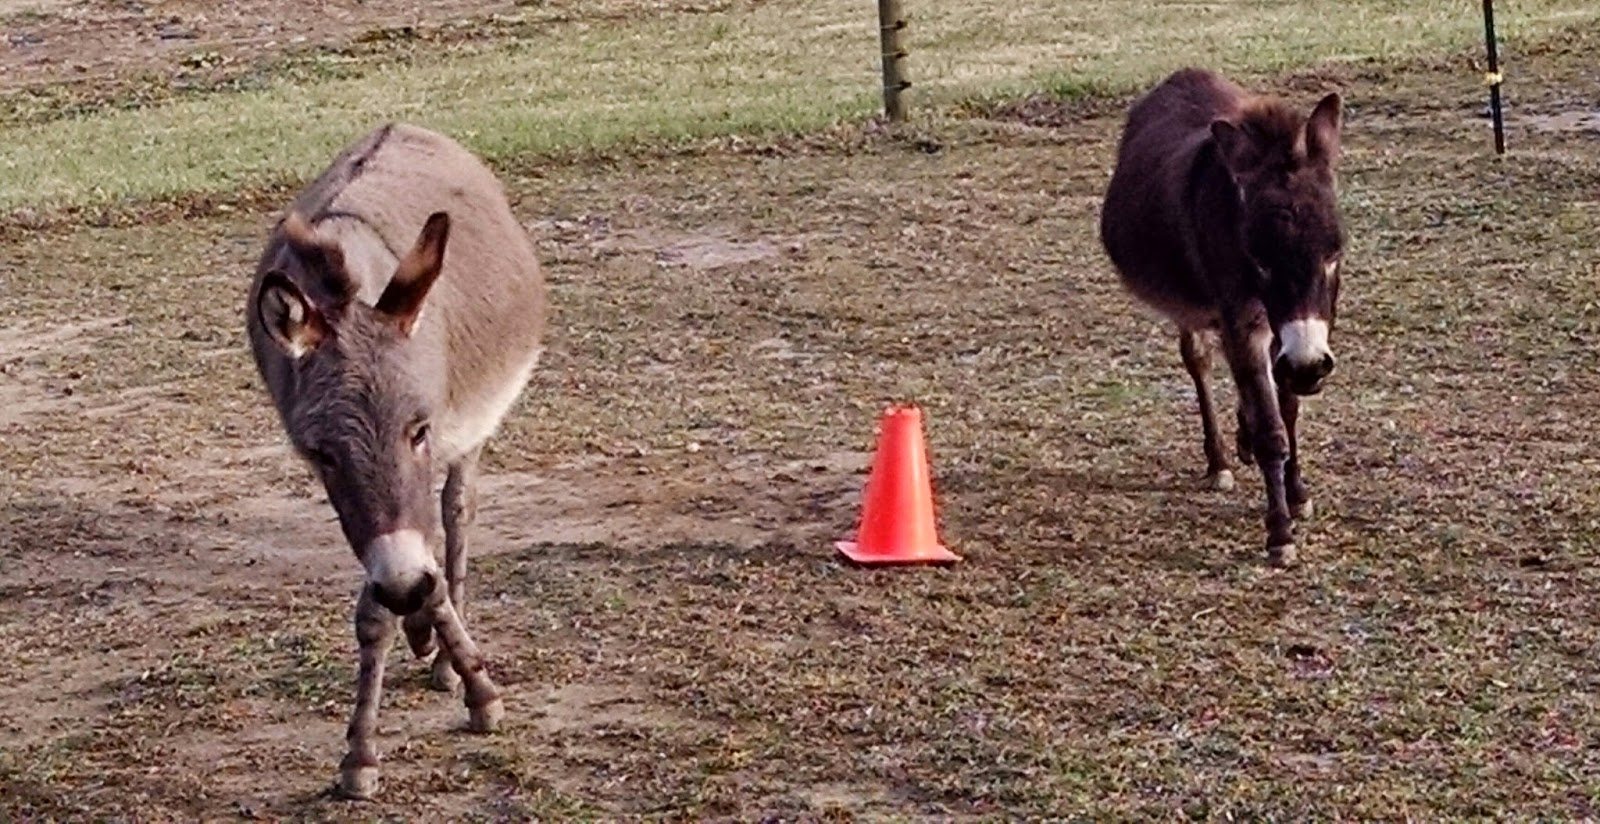 two miniature donkeys playing with traffic cones